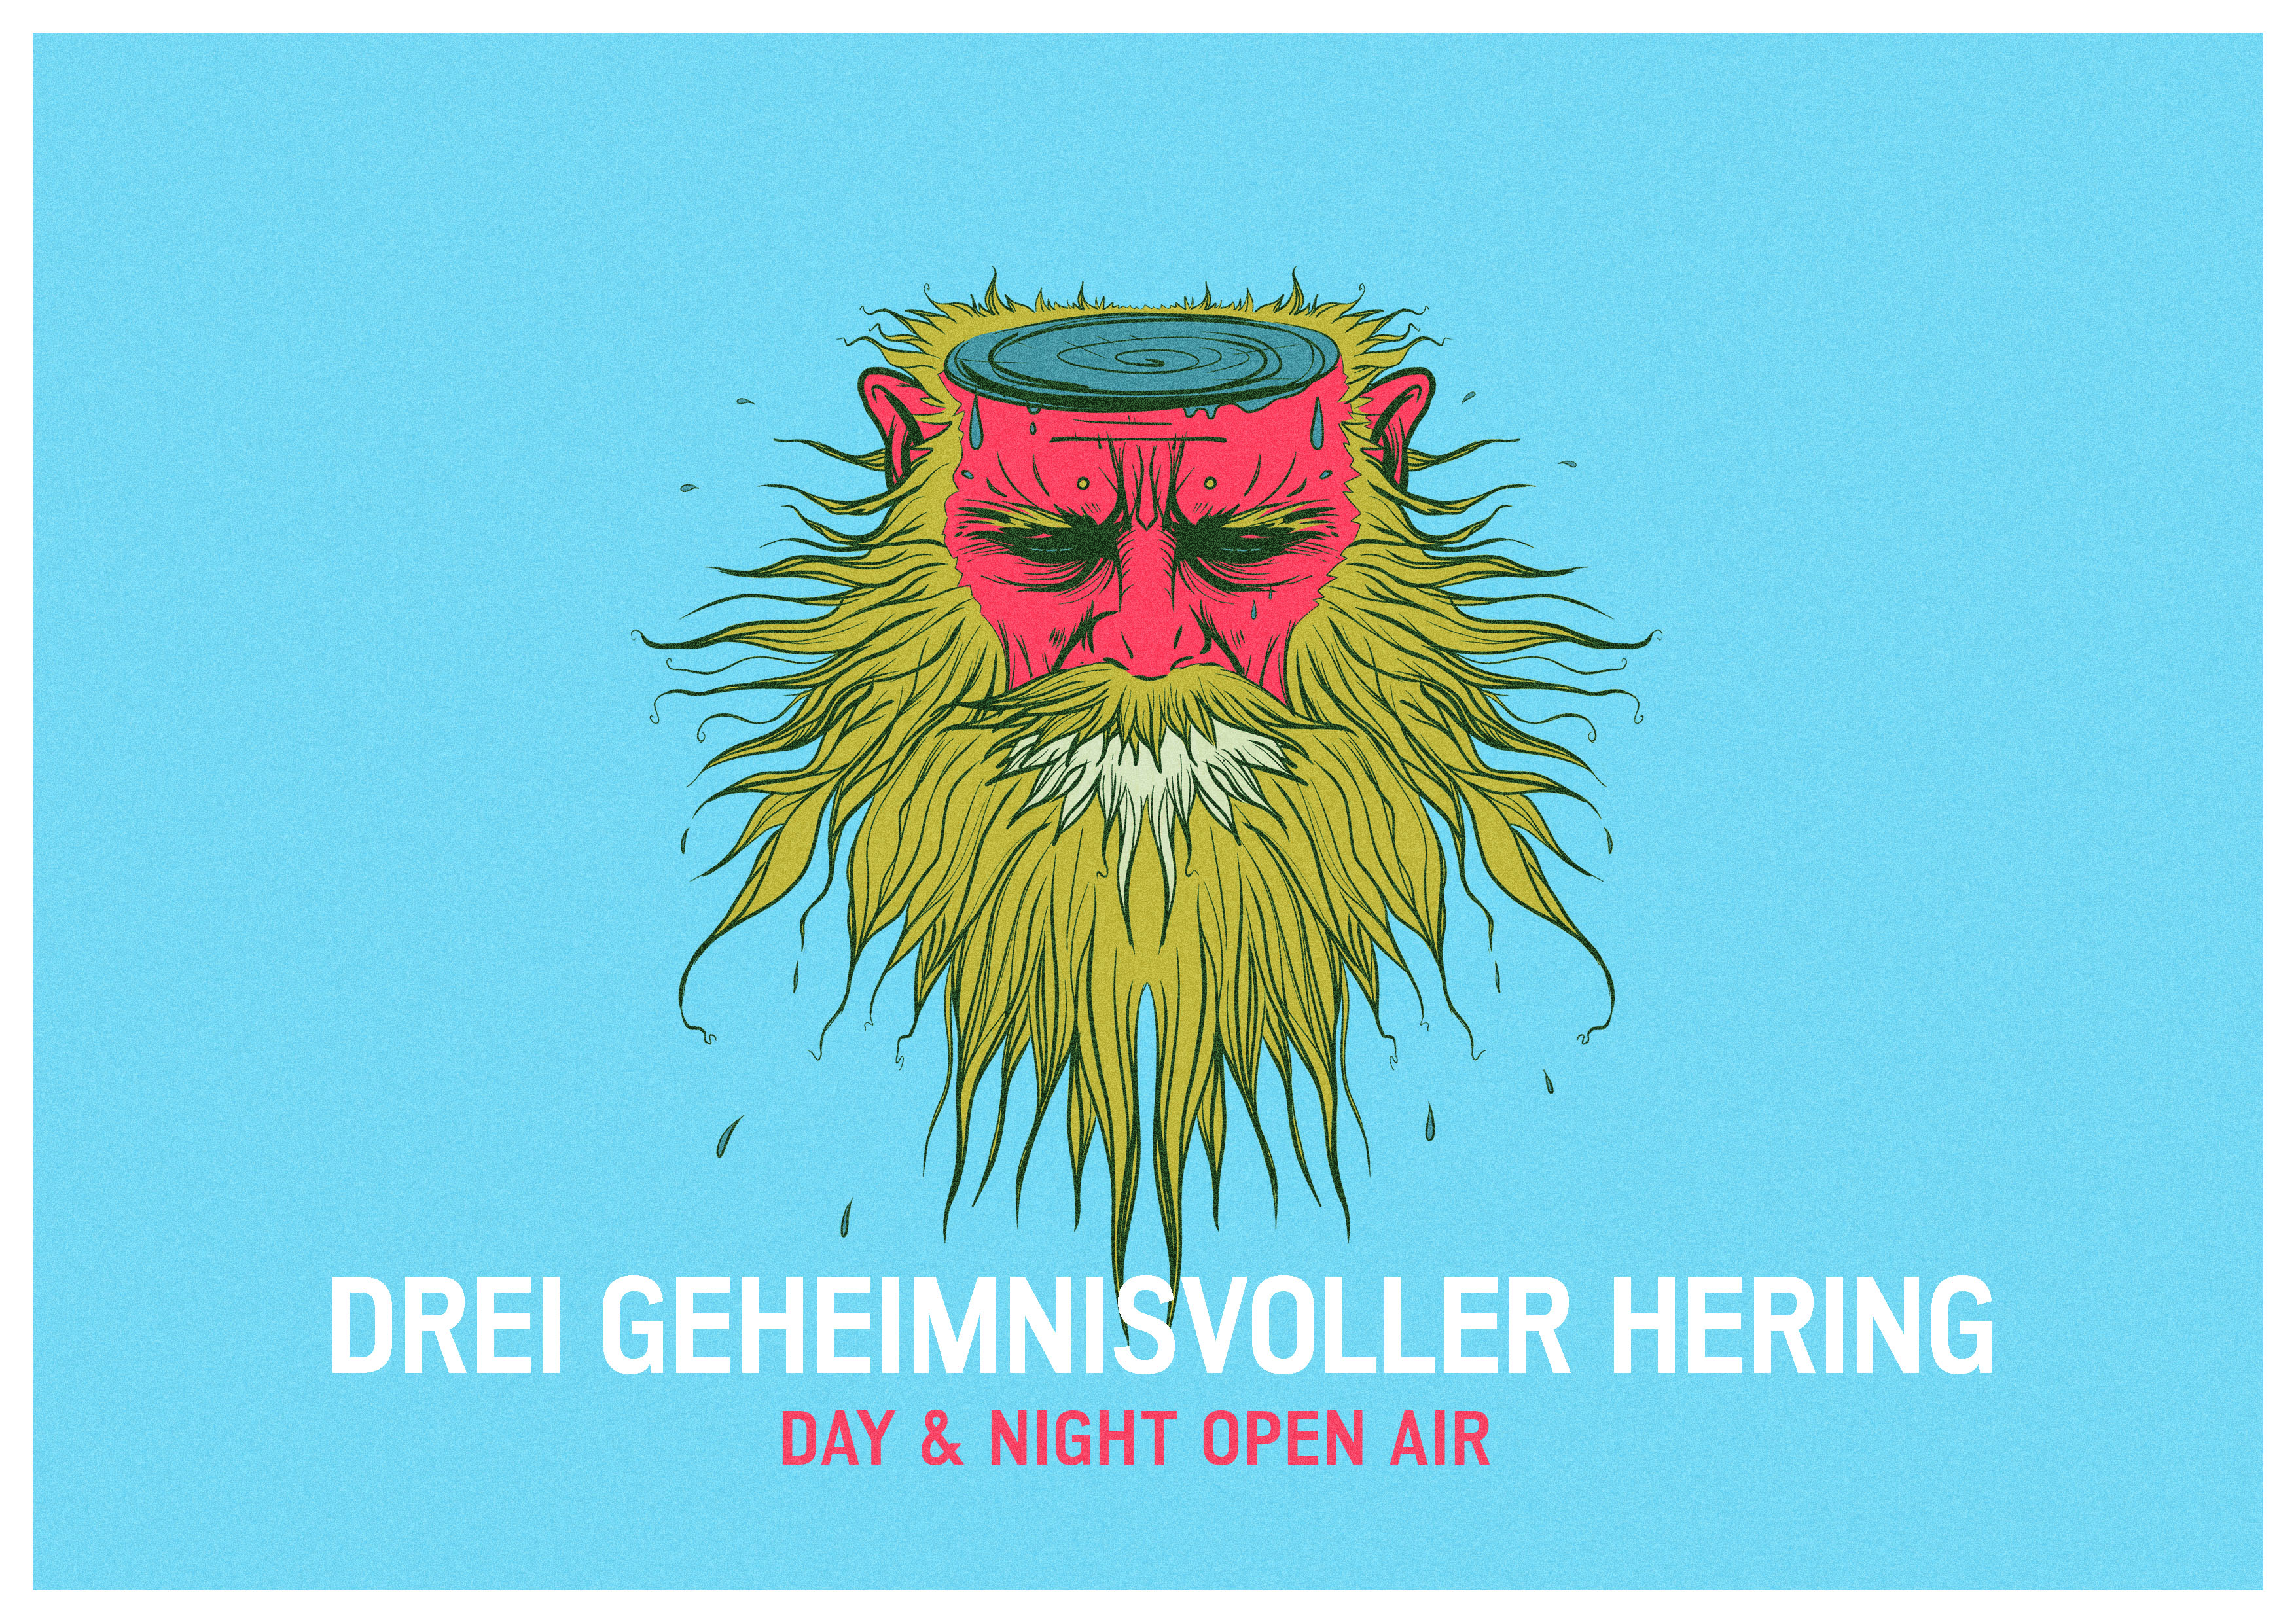 Drei Geheimnisvoller Hering – das Day and Night Open Air in Essen